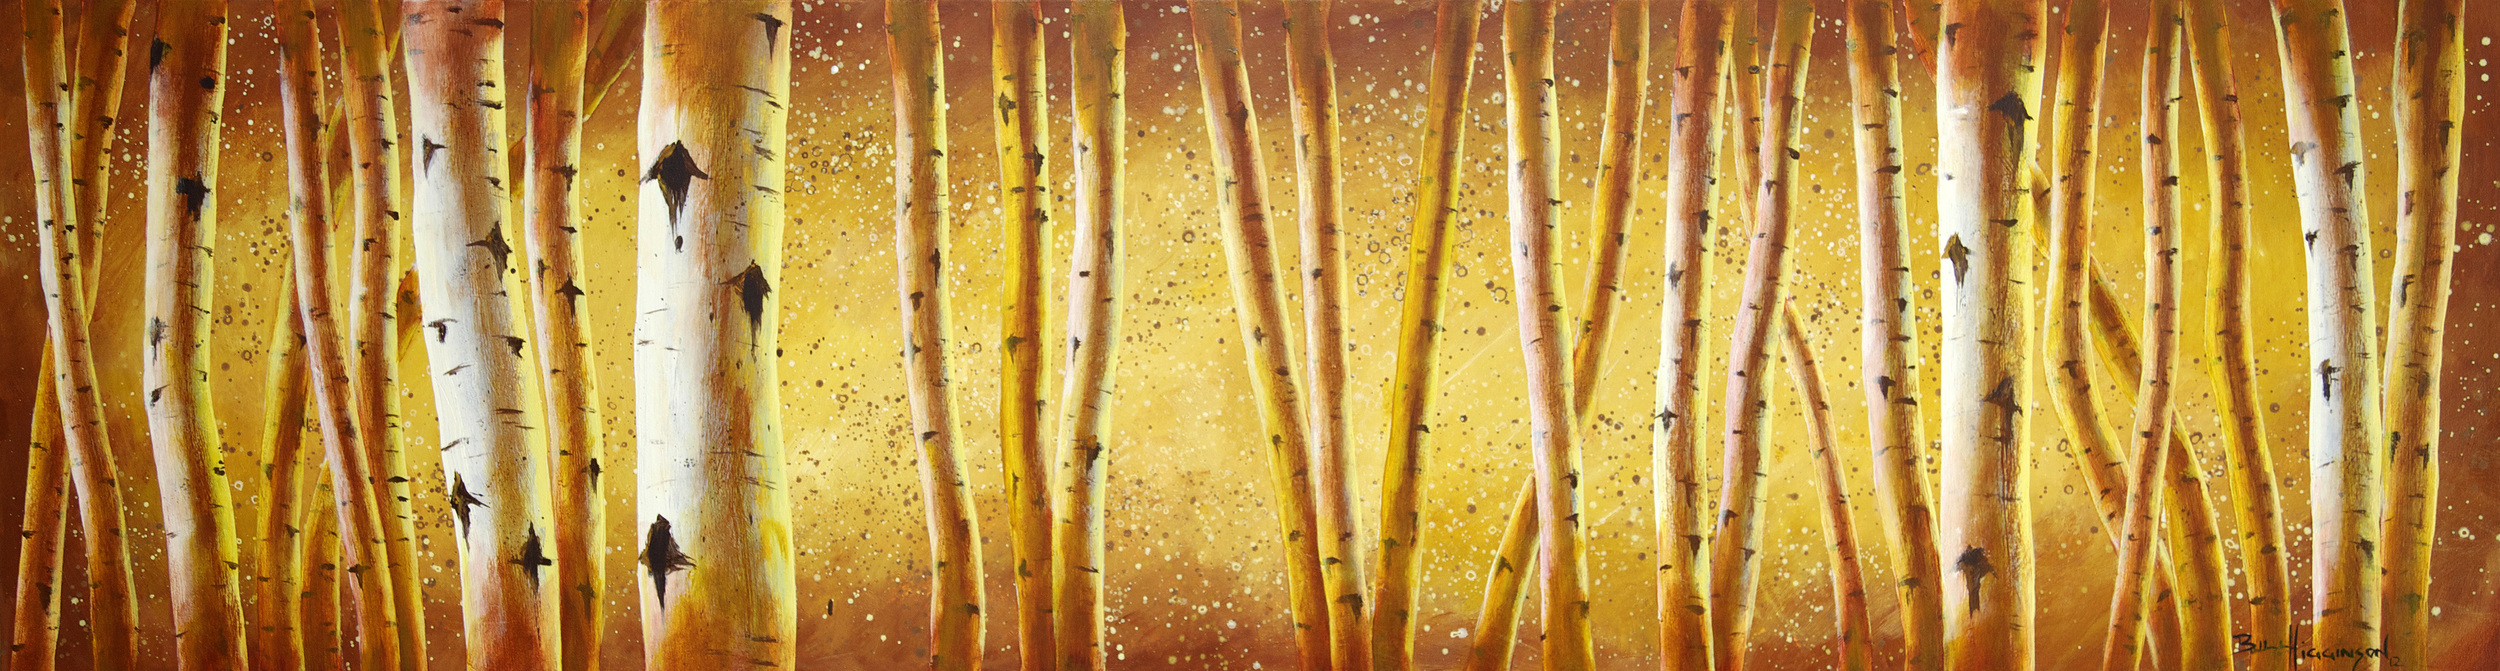 bill_higginson_into-the-birch-surrealism_painting-acrylic-painting-pears-fruit-canvas